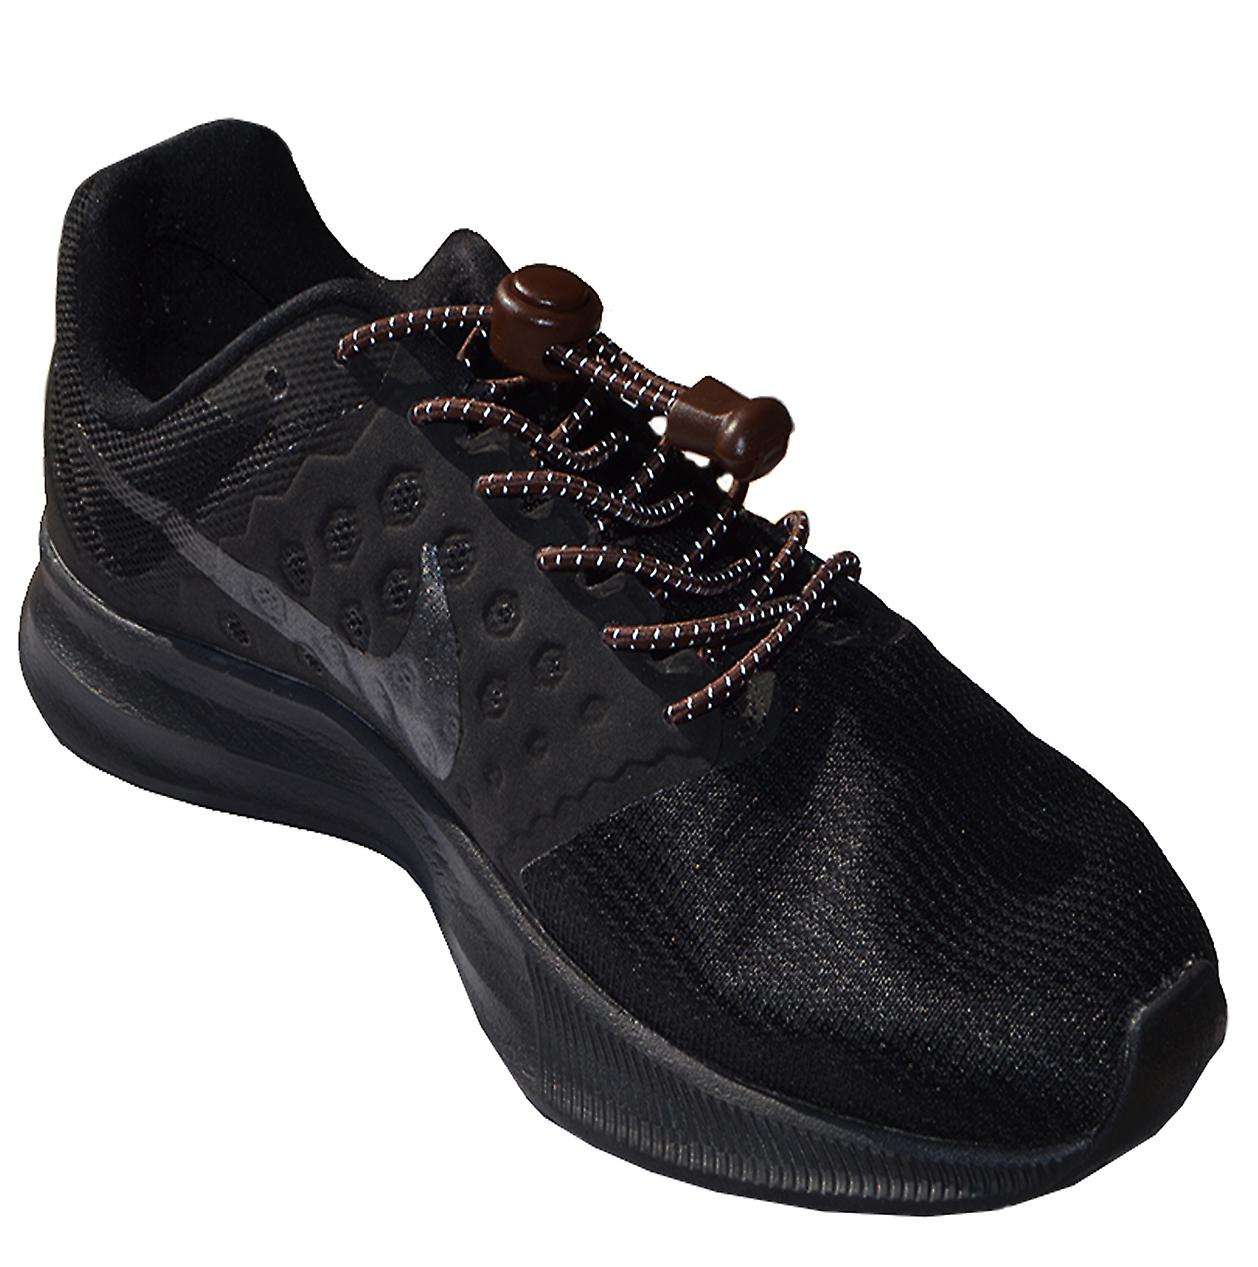 Reflective Brown Elastic Lock Lace